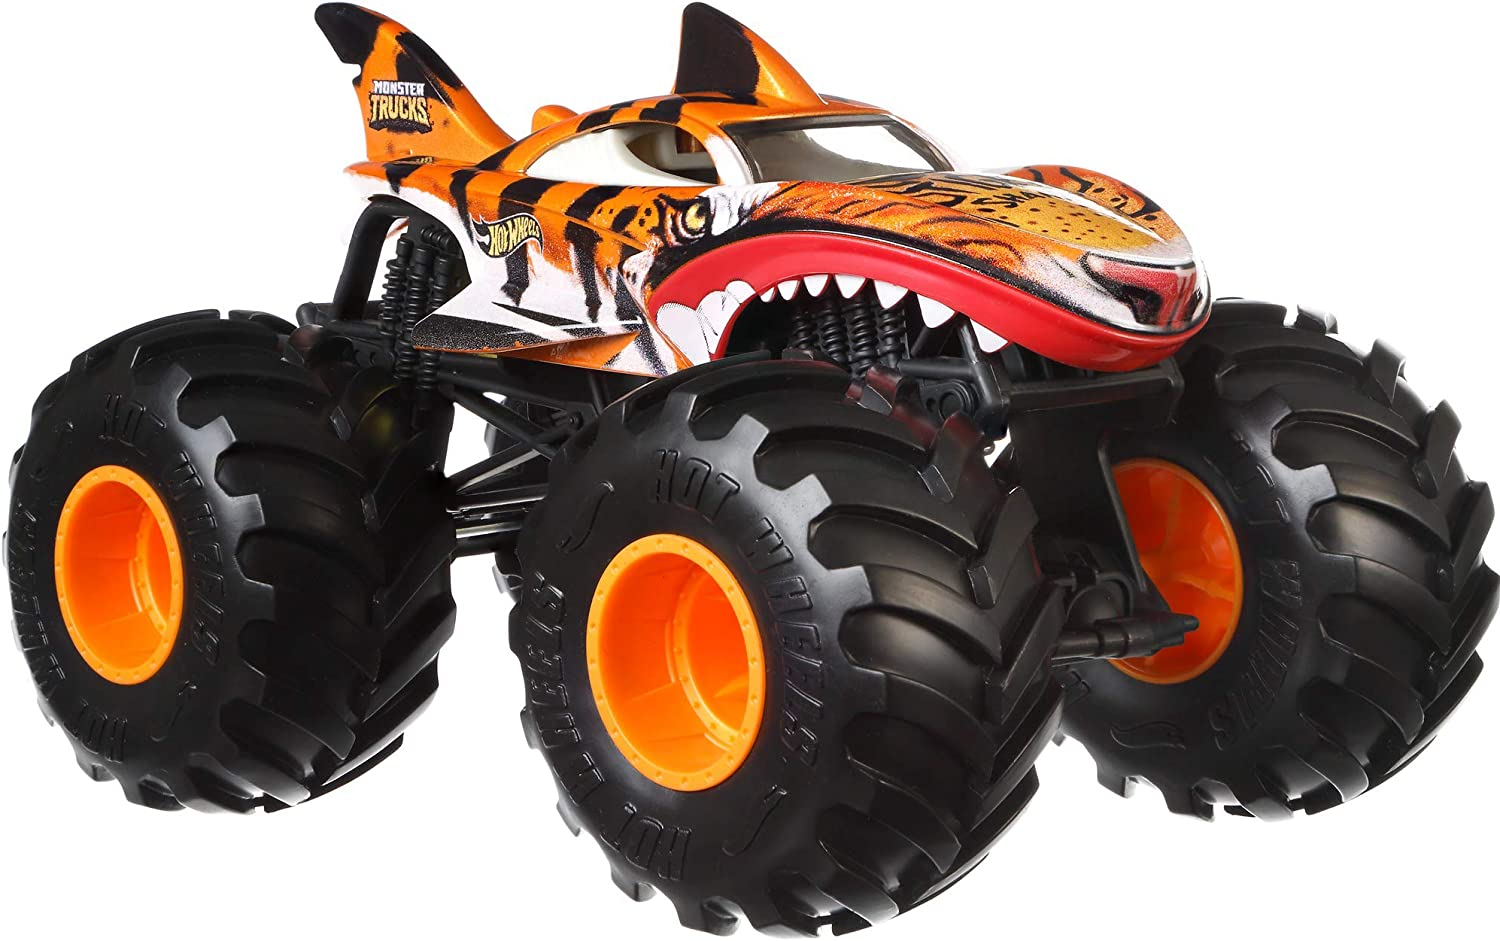 Amazon Com Hot Wheels Monster Trucks Tiger Shark Die Cast 1 24 Scale Vehicle With Giant Wheels For Kids Age 3 To 8 Years Old Great Gift Toy Trucks Large Scales Toys Games